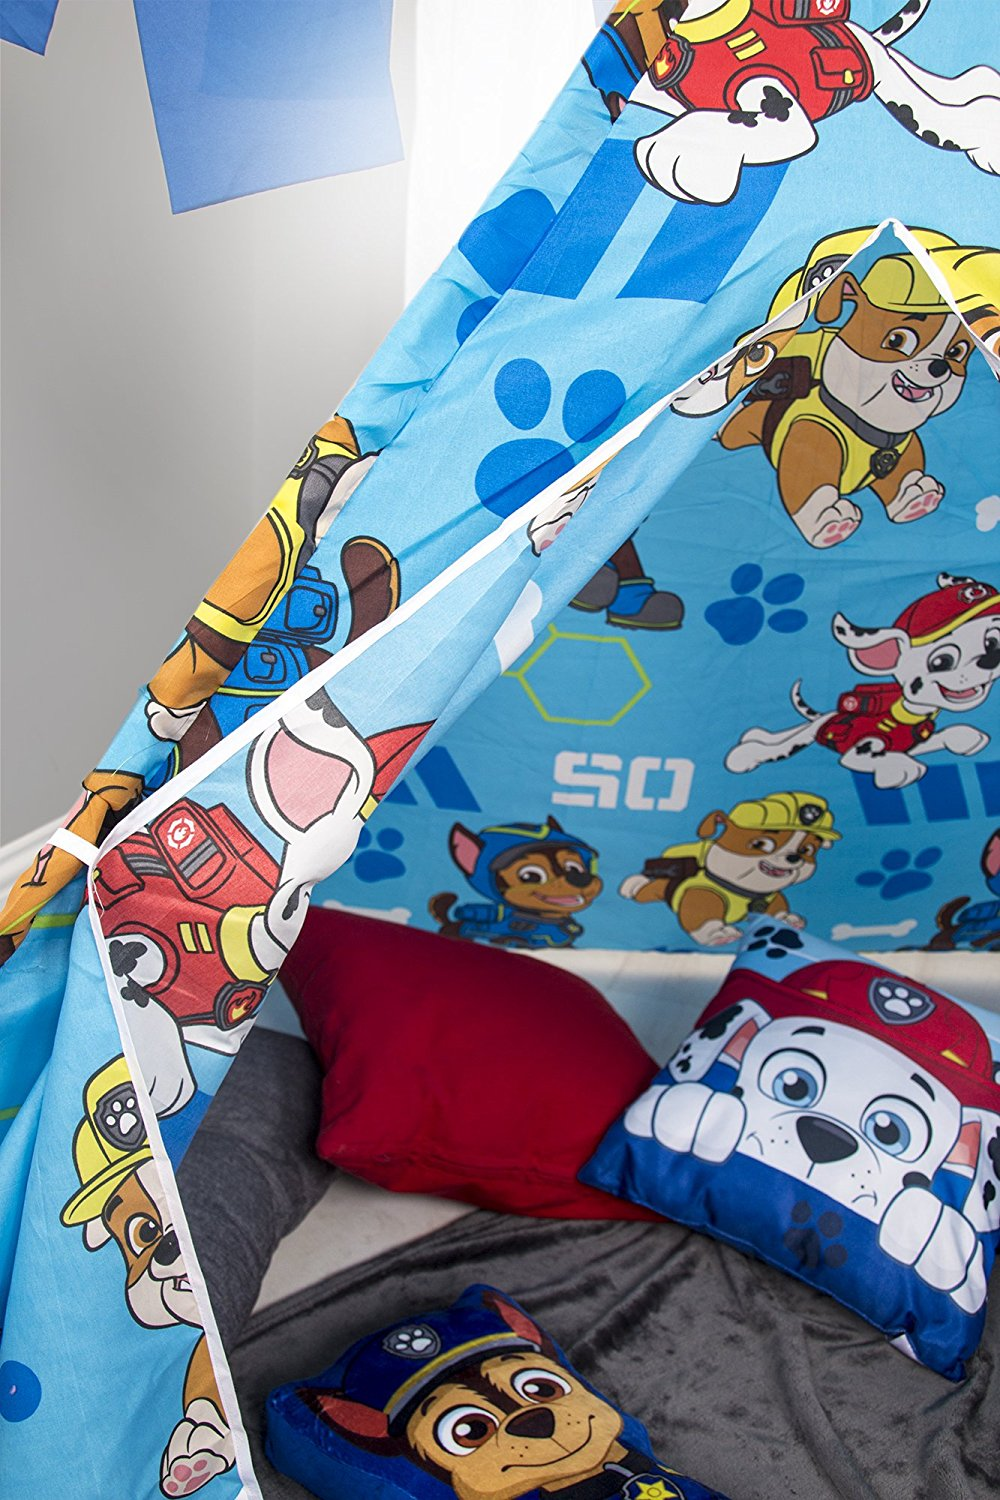 PAW PATROL DASH Teepee Tent Playhouse Tipi Outdoor Indoor Boys Kids Child Gift